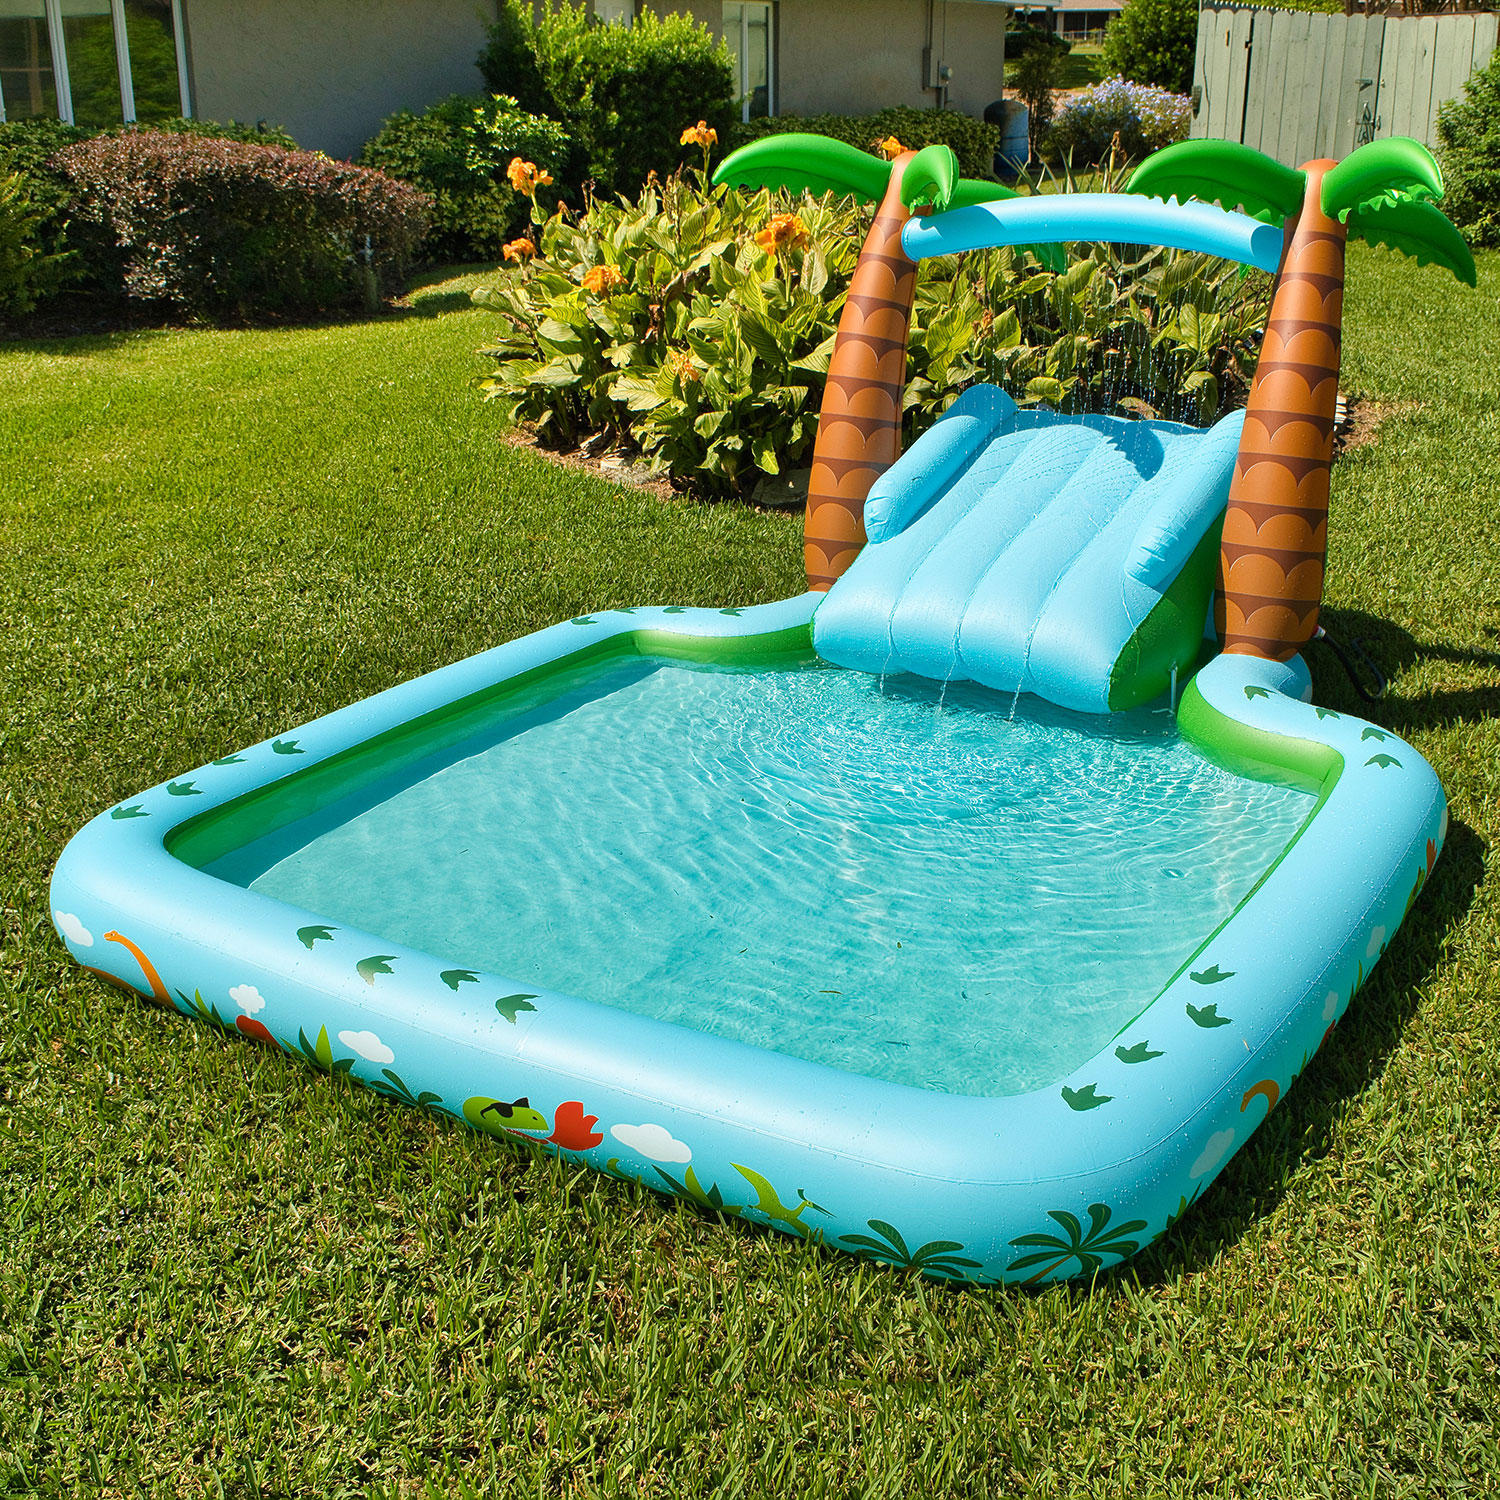 Member's Mark Novelty Pool with Slide! .98 at Sam's Club!